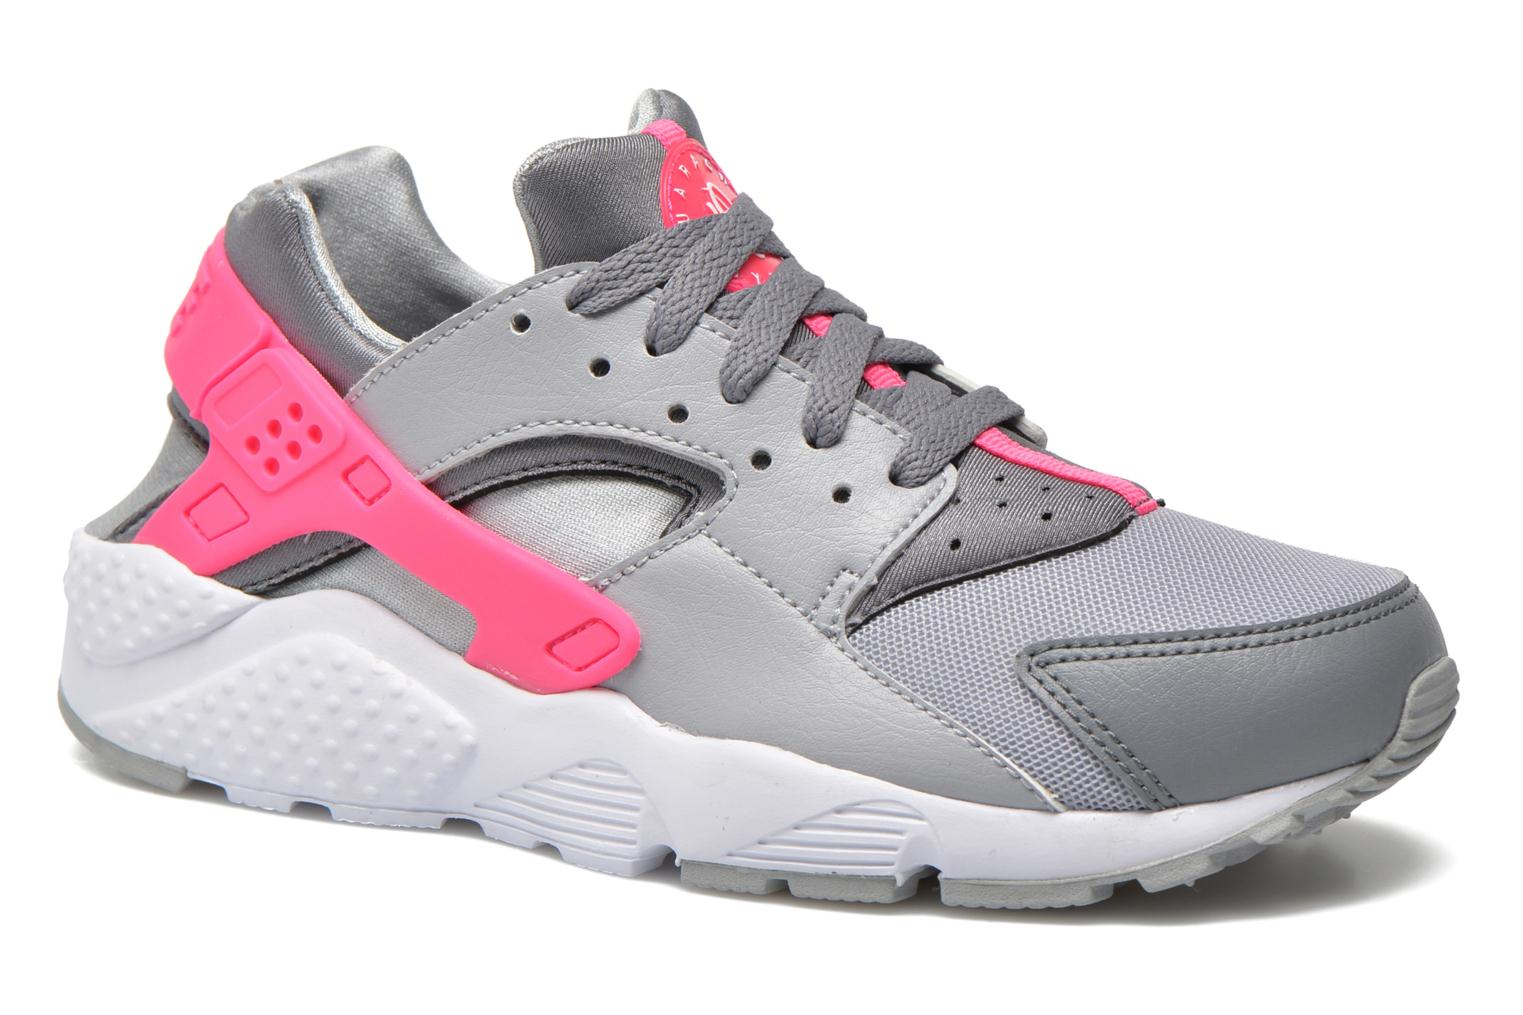 Nike Huarache Run (Gs) Wlf Grey/White-Cl Gry-Hypr Pnk